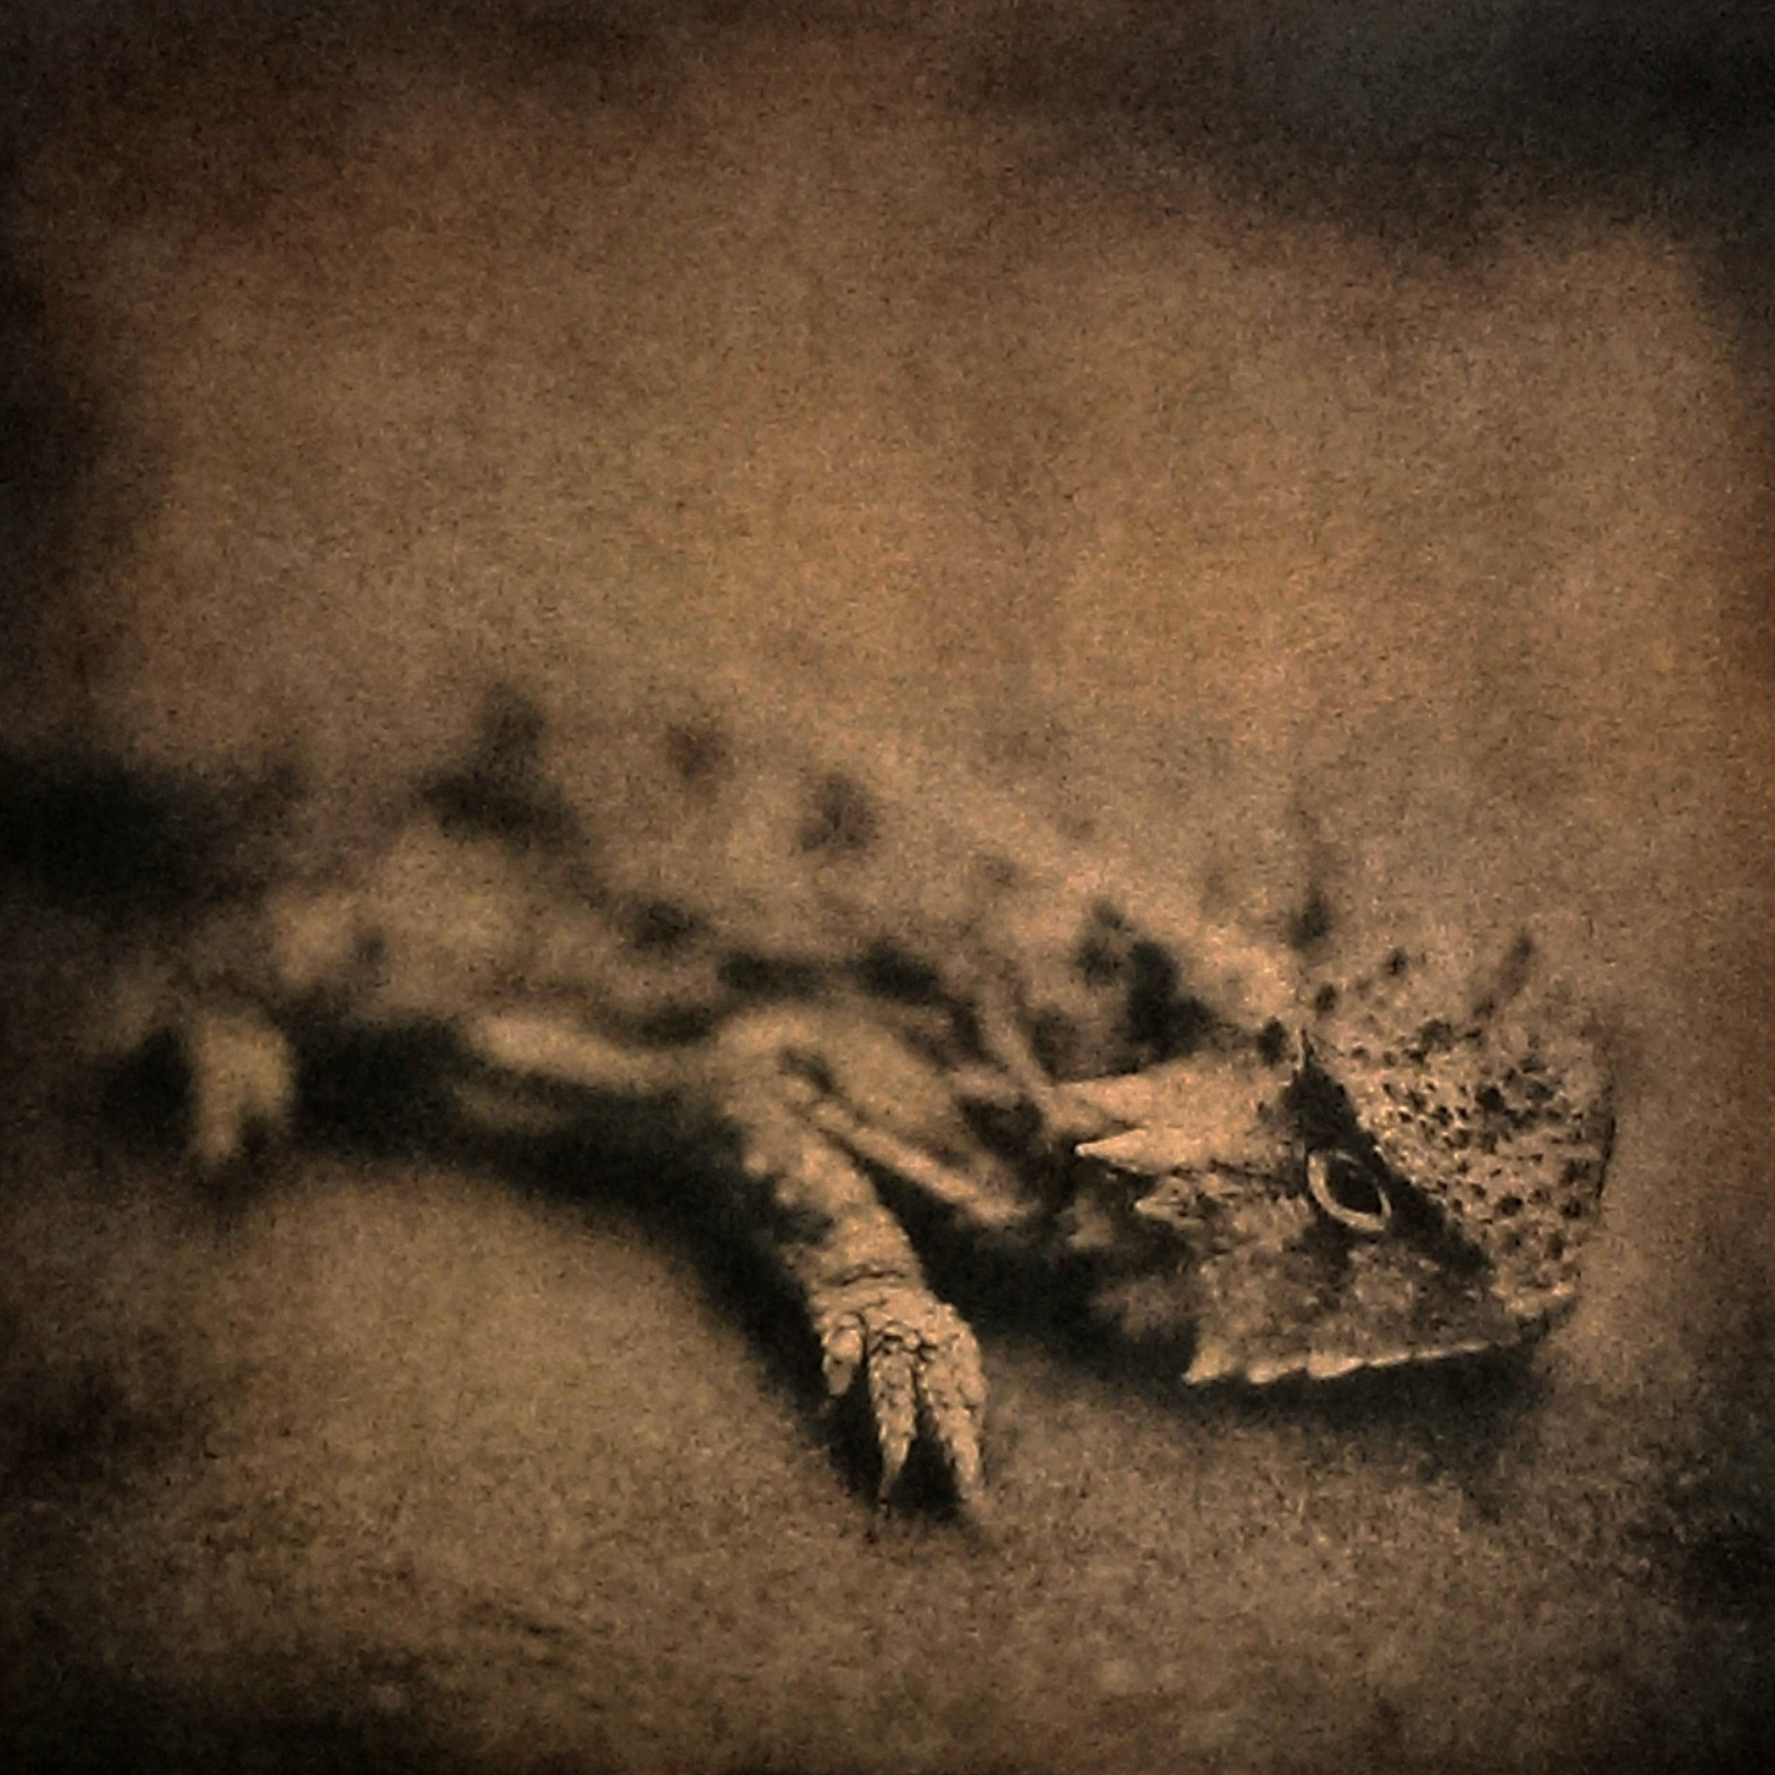 Horny Toad, 2014